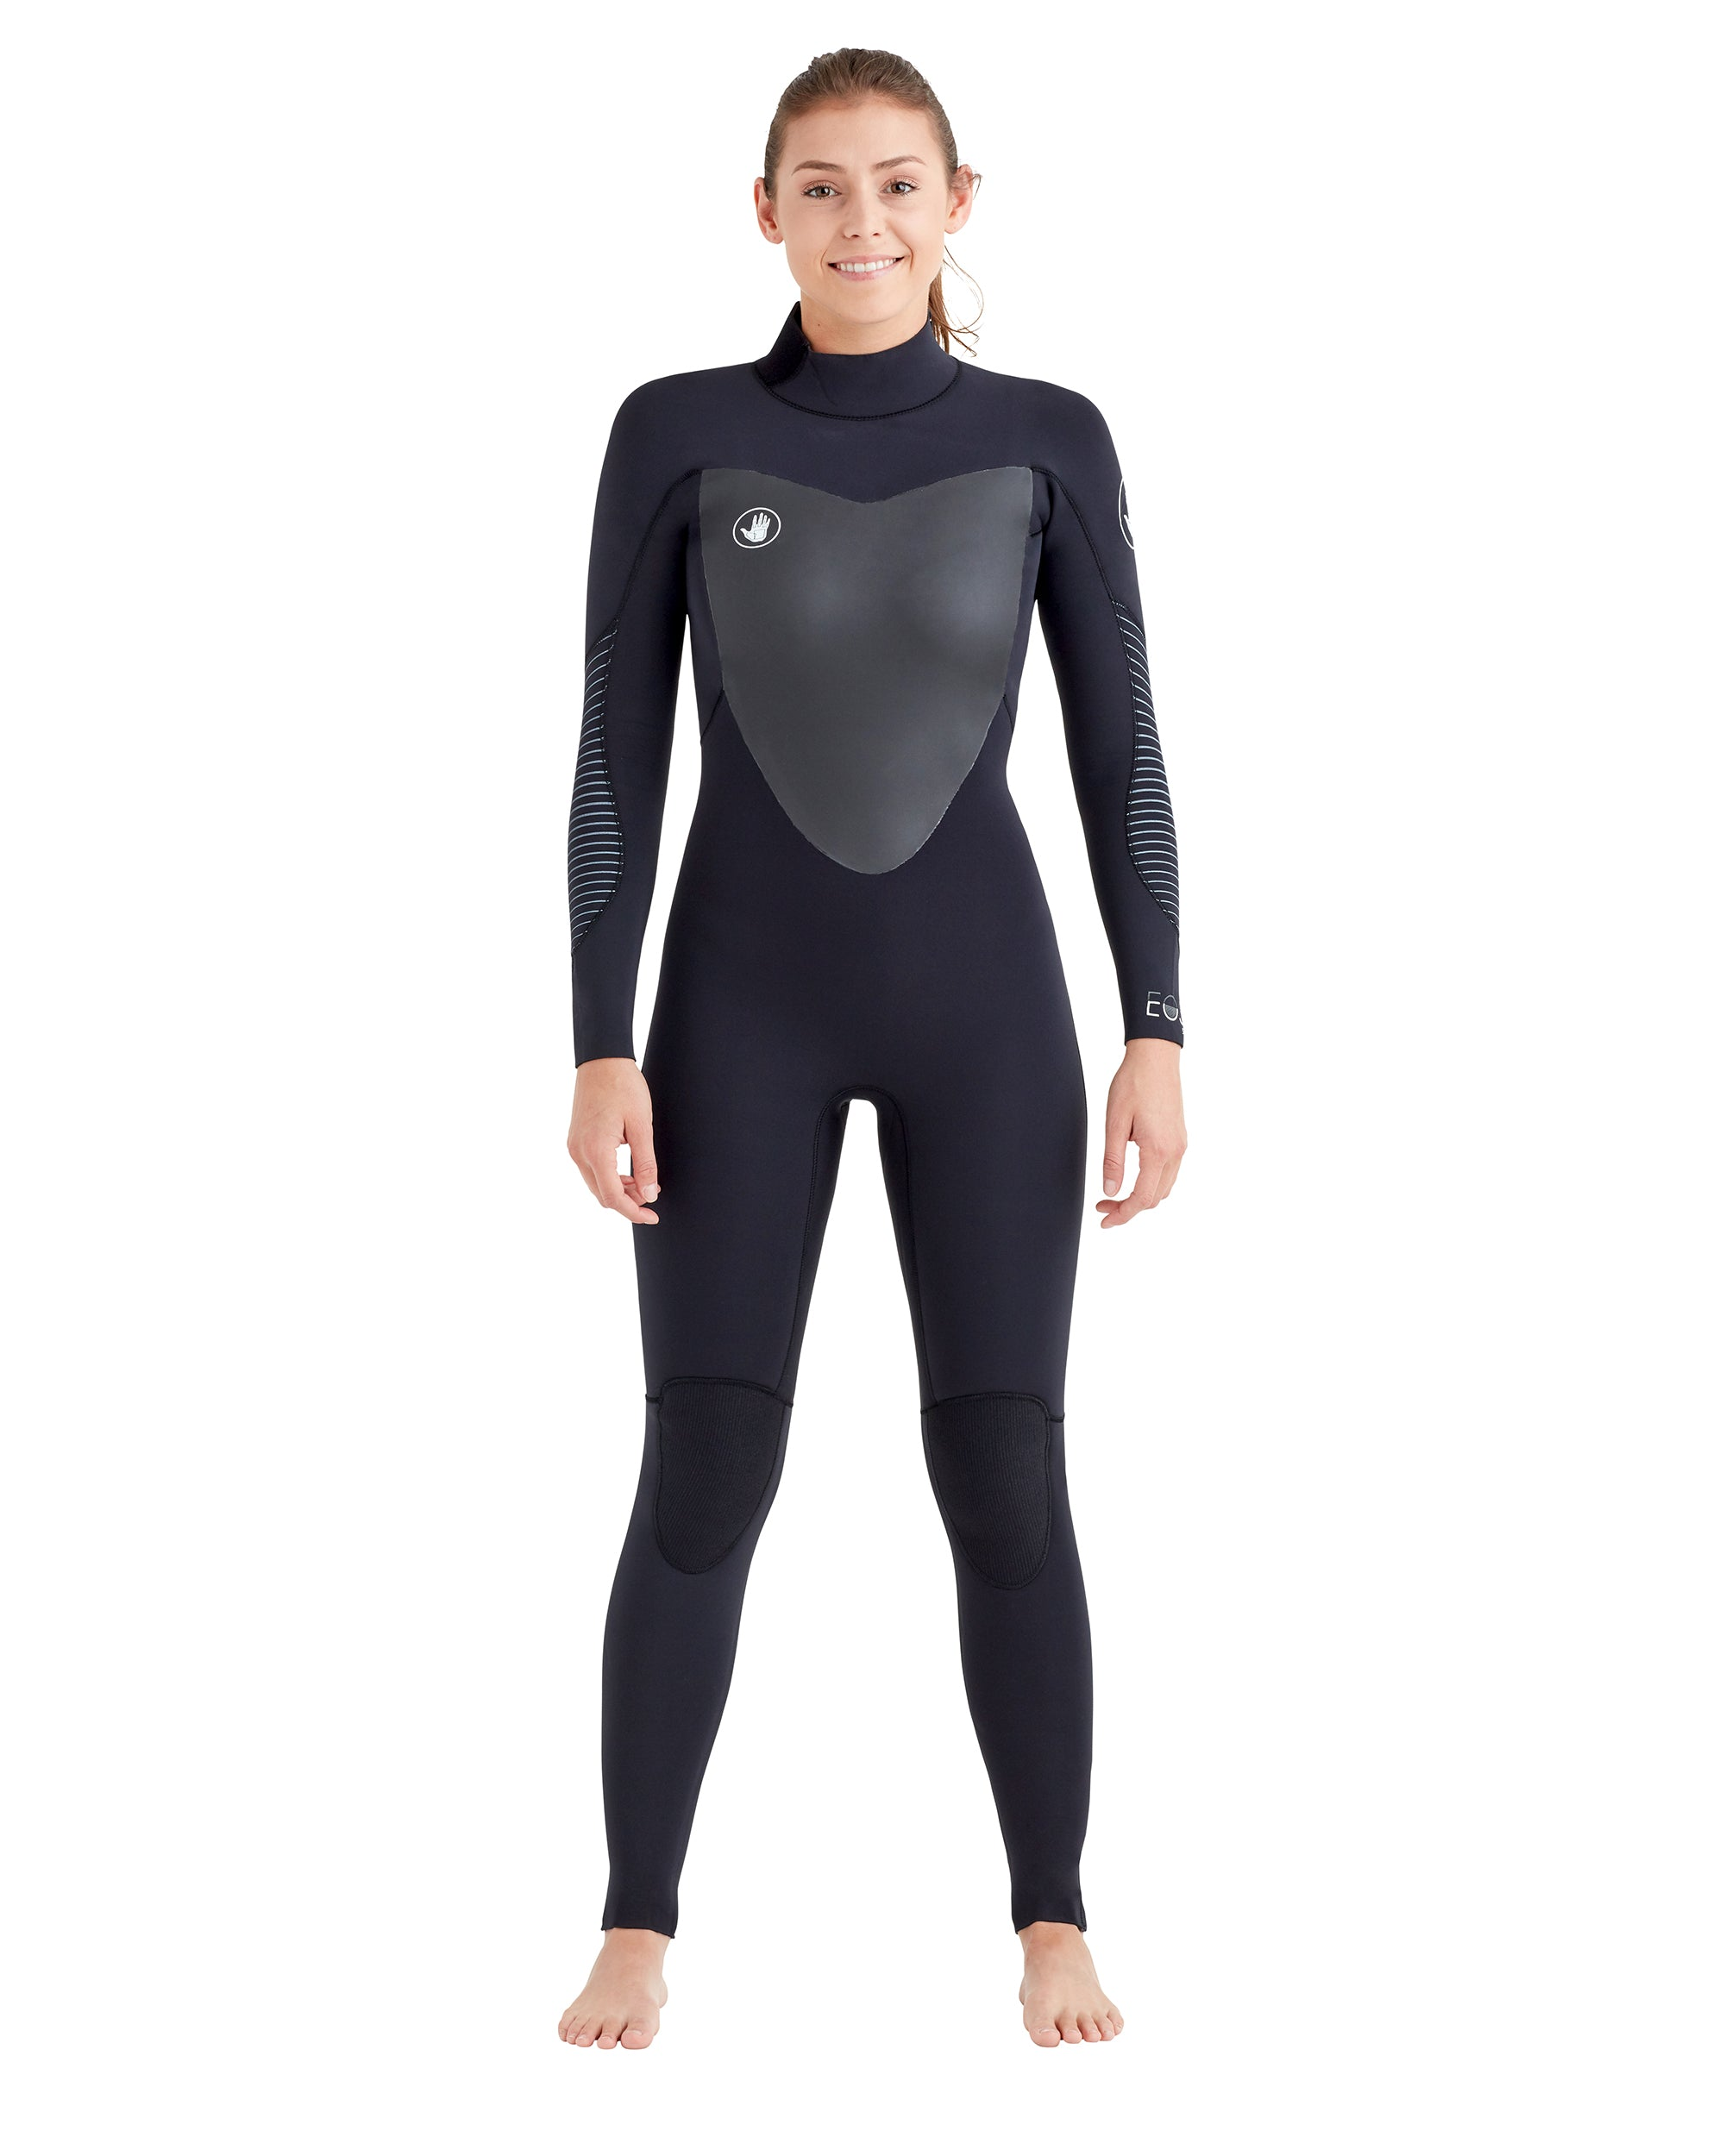 Women's Eos Back-Zip 4/3mm Women's Fullsuit - Black